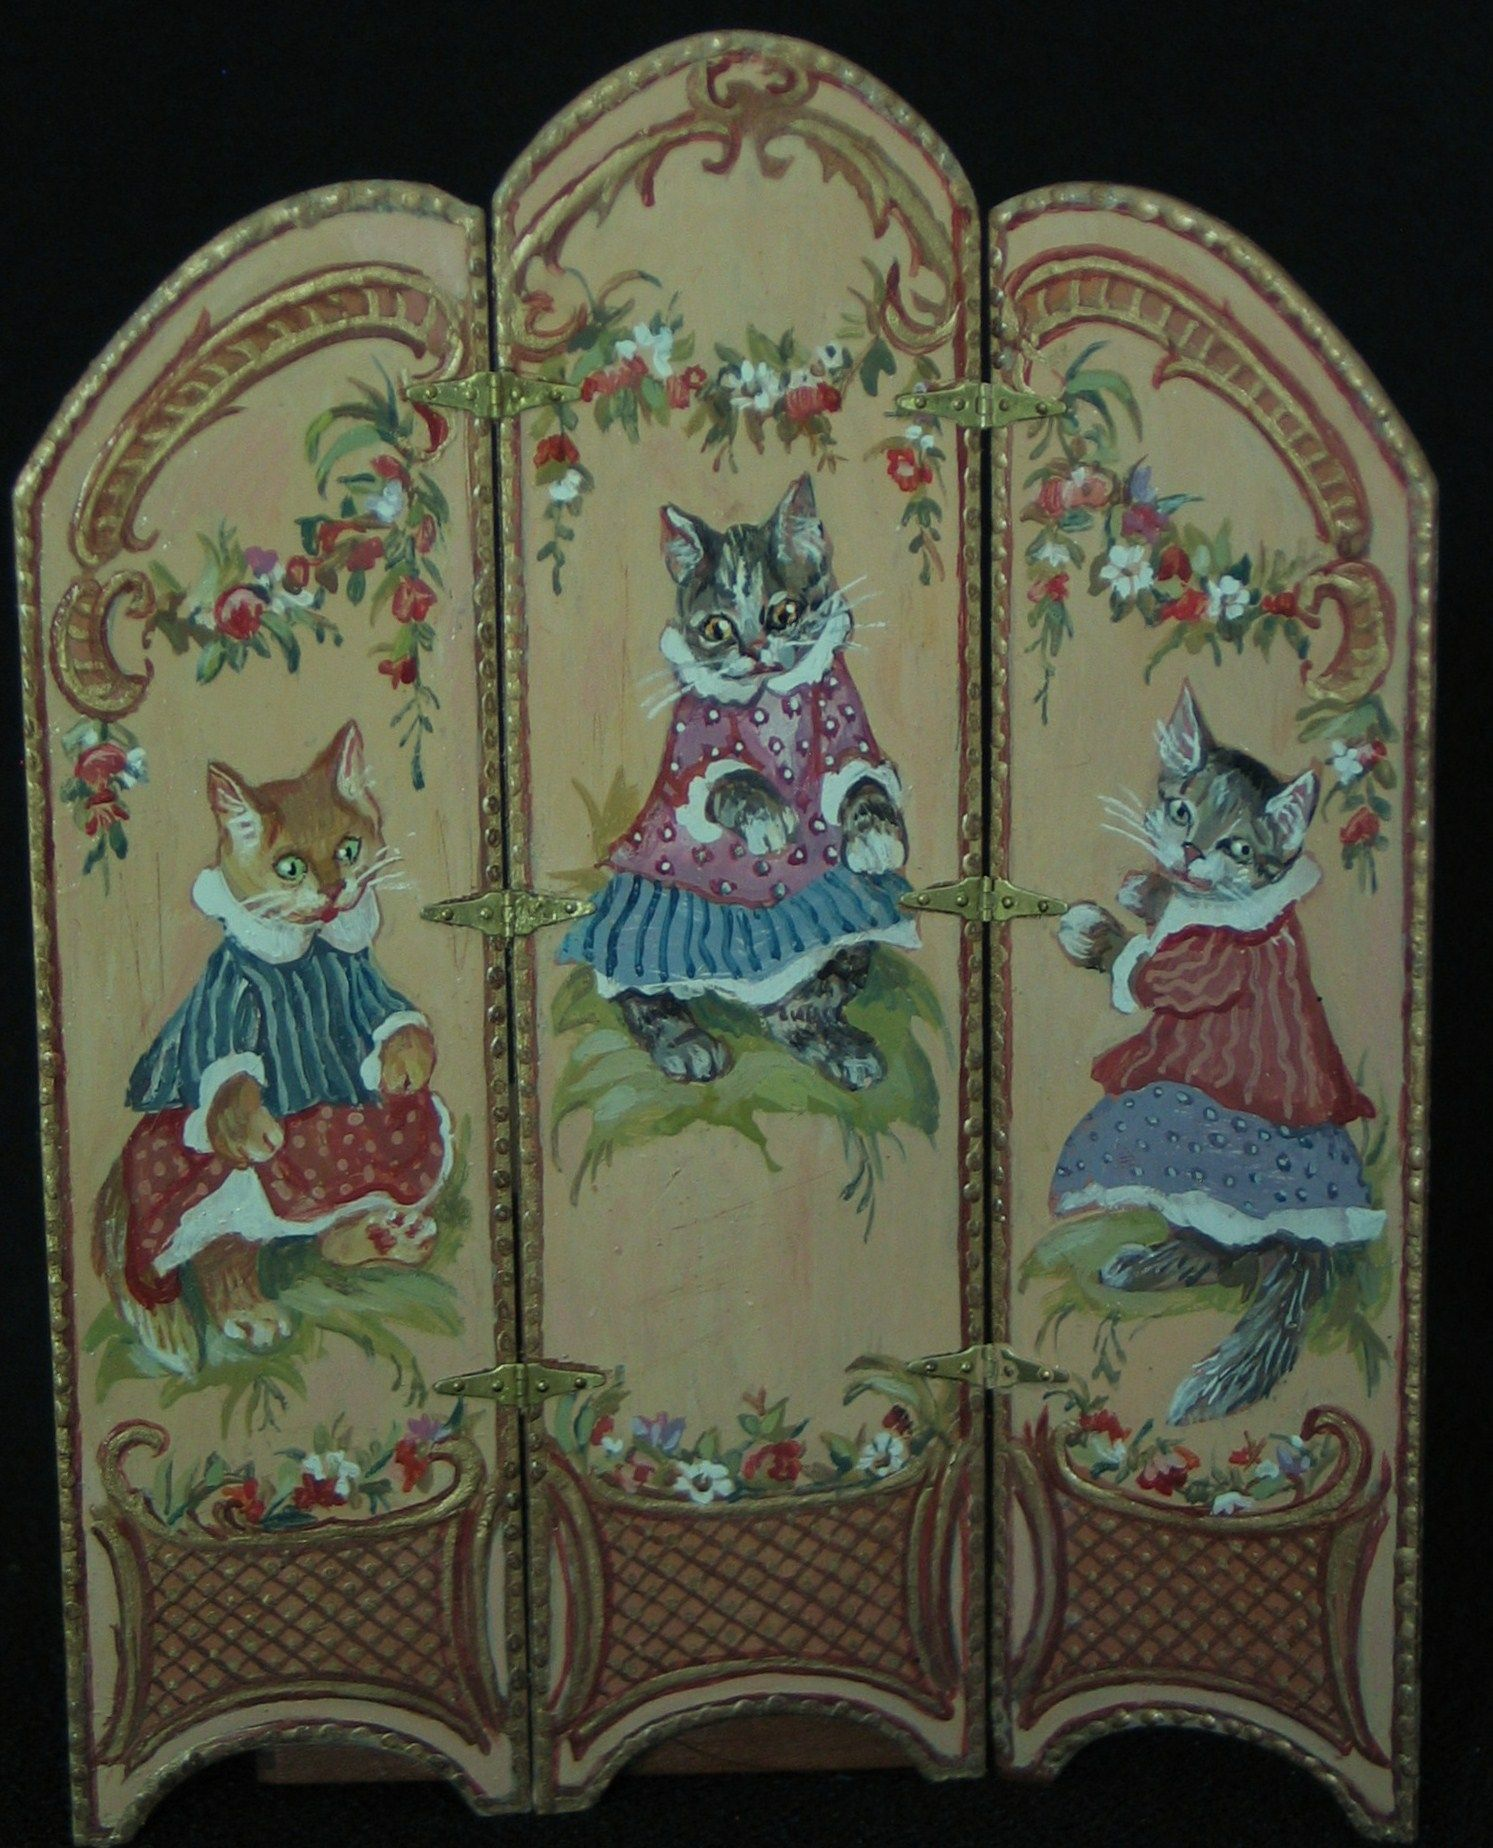 Google+ (Kittens - a lovely painted screen by Natasha Beshenkovsky - would look wonderful in a nursery or child's bedroom)